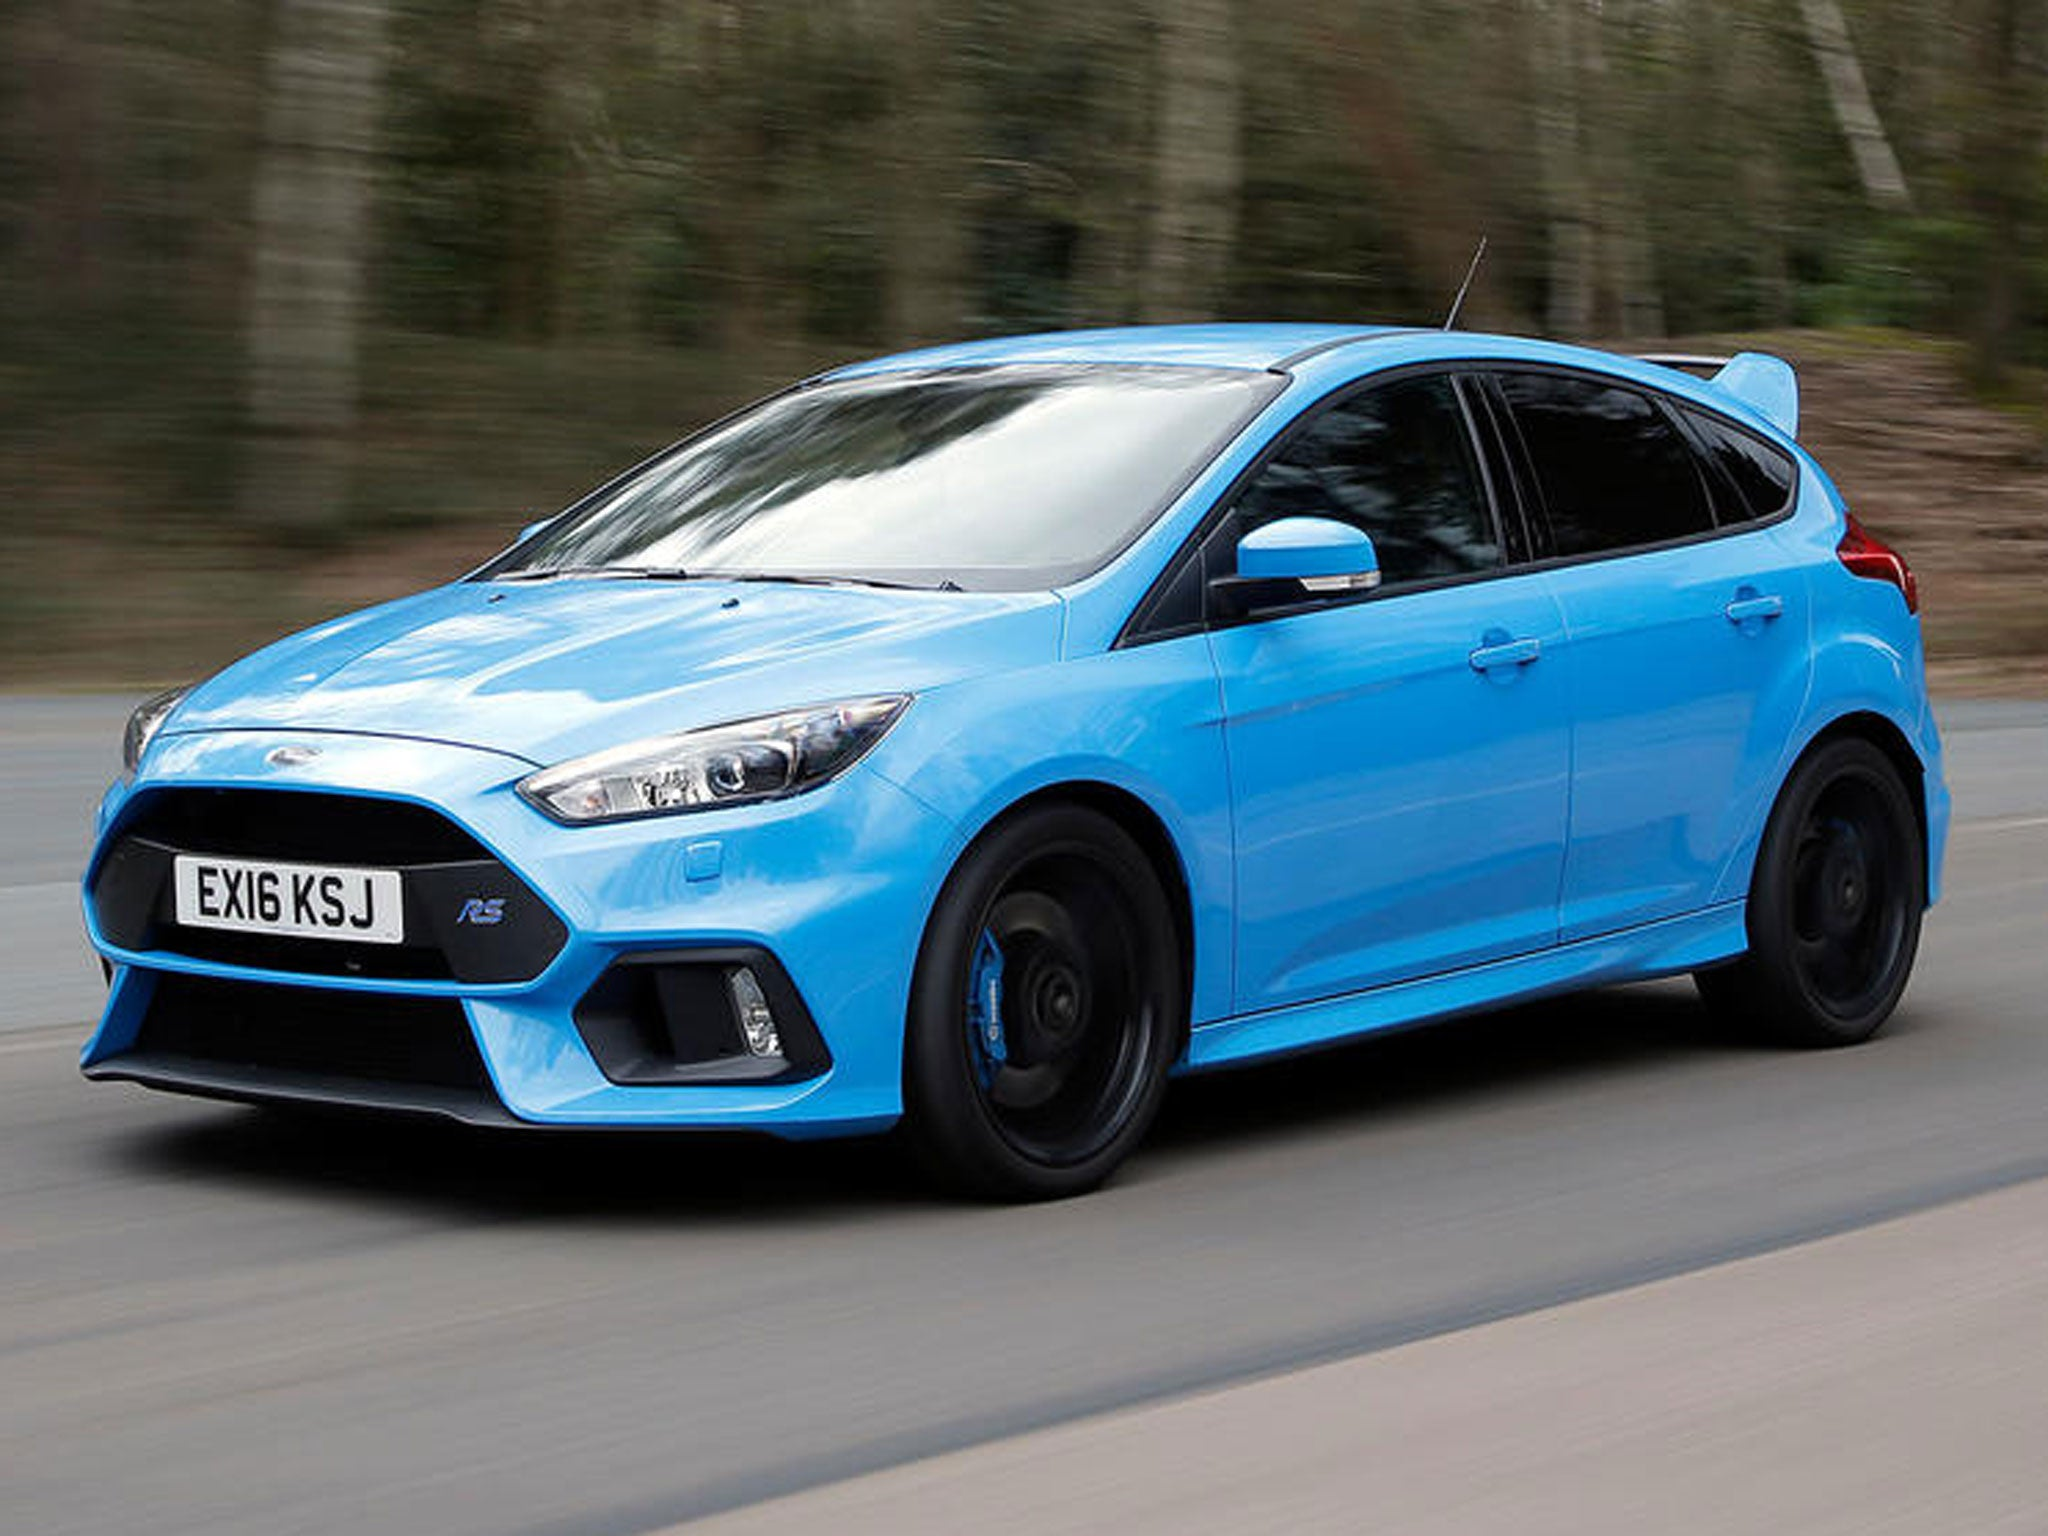 ford focus rs car review on road and on track with super hatch of the century the independent. Black Bedroom Furniture Sets. Home Design Ideas